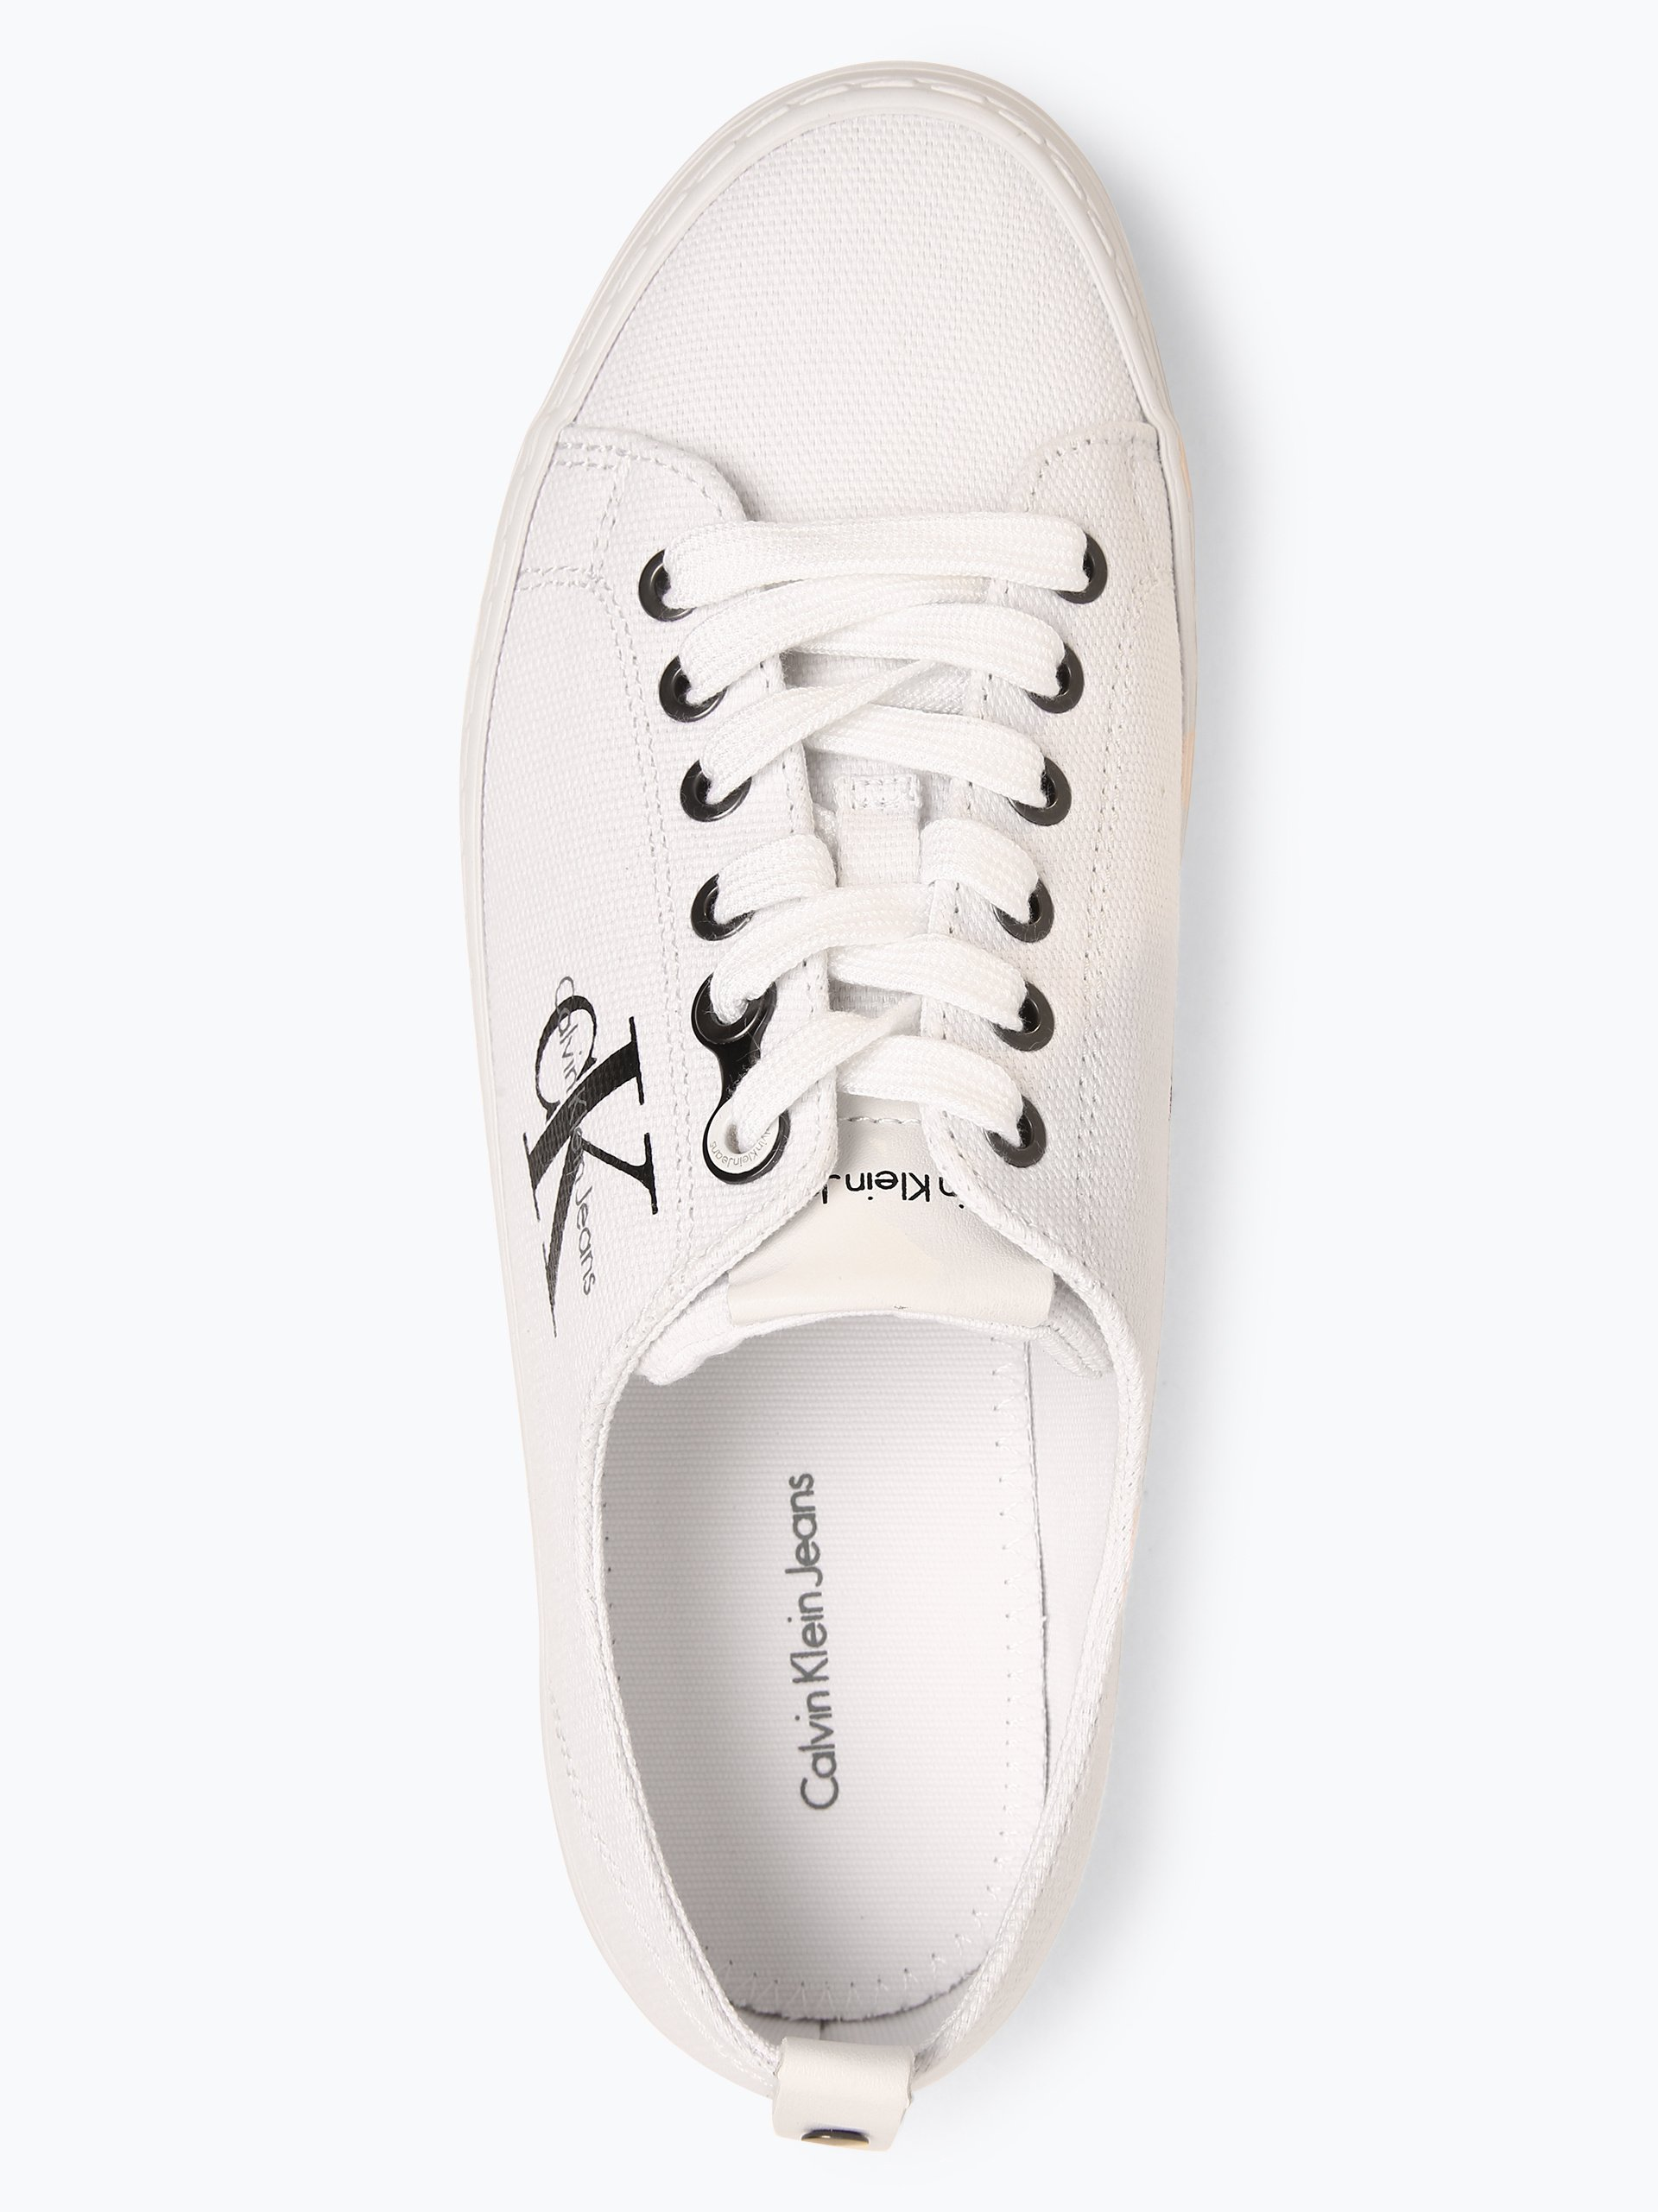 CALVIN KLEIN JEANS SNEAKERS MIDNIGHT NATURAL SALE